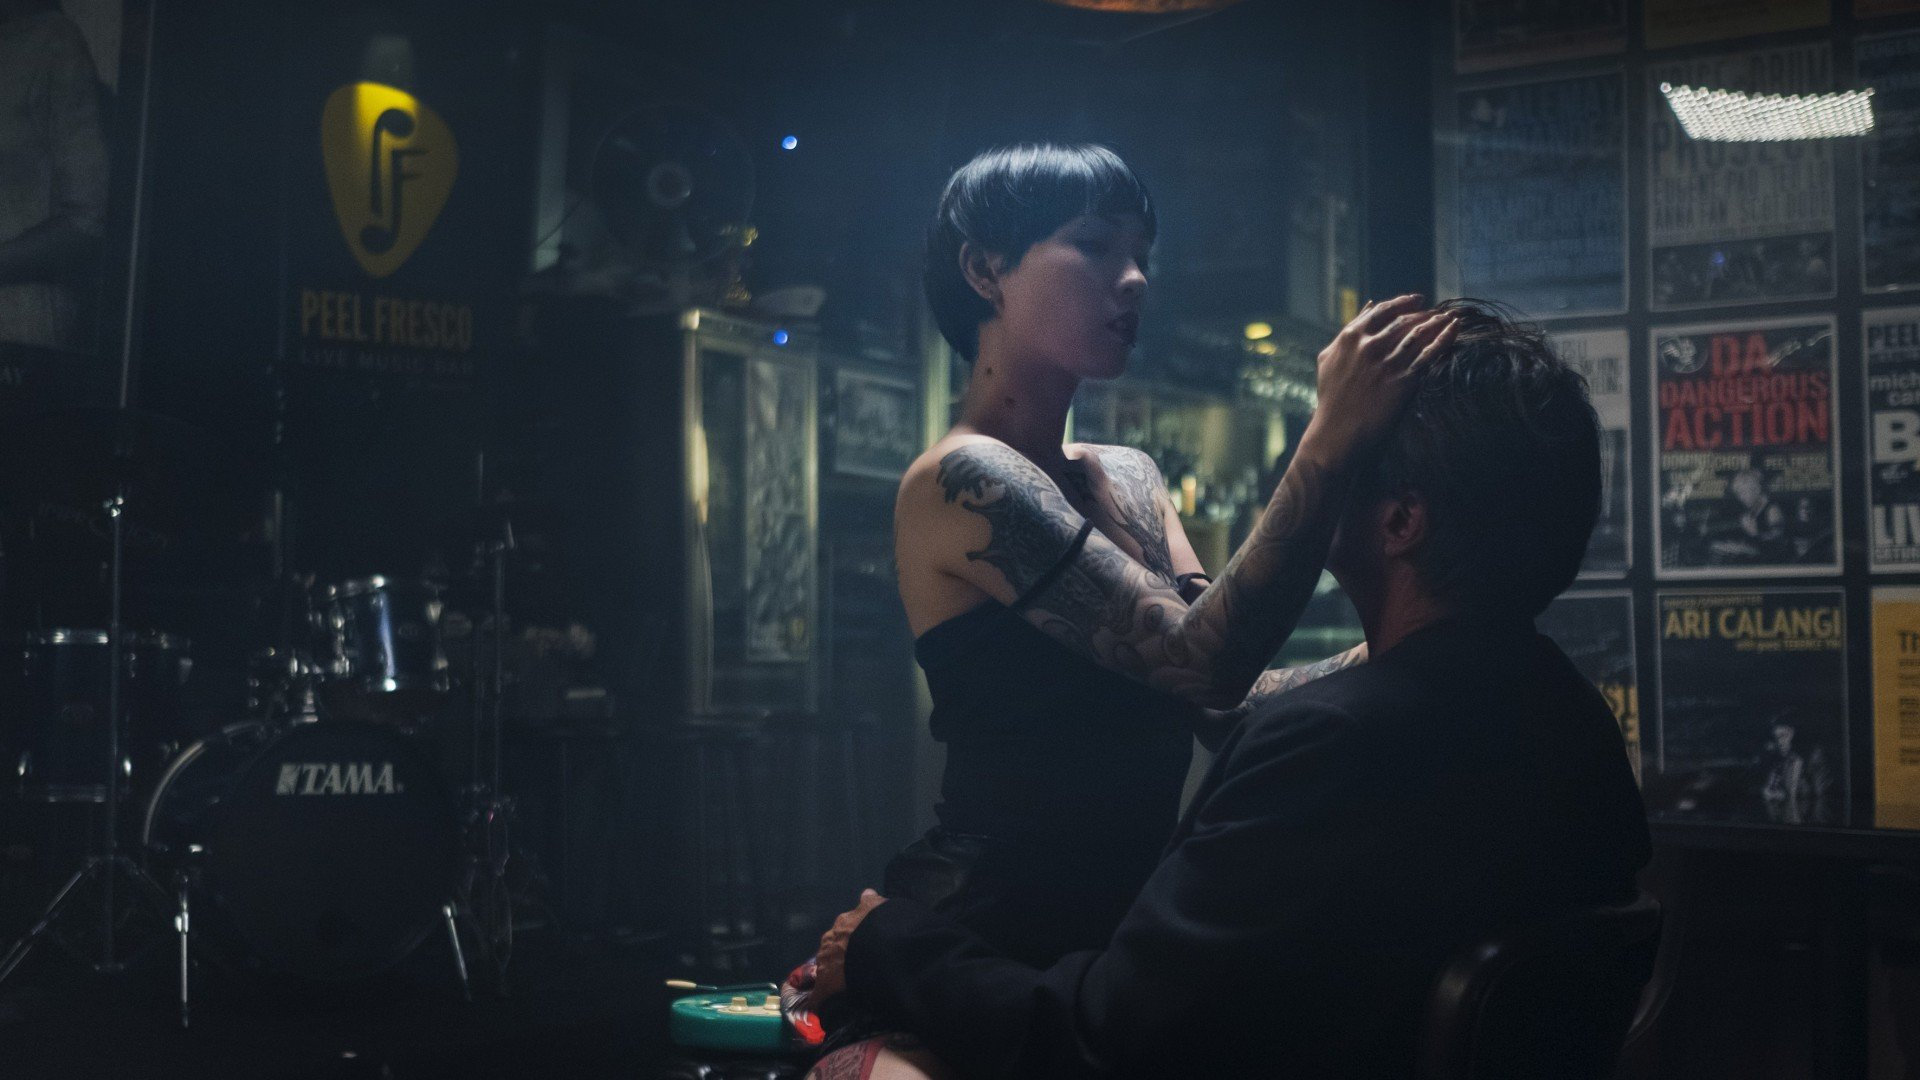 No Cliched Suzie Wong Crowdfunded Hong Kong Short Film Empowers